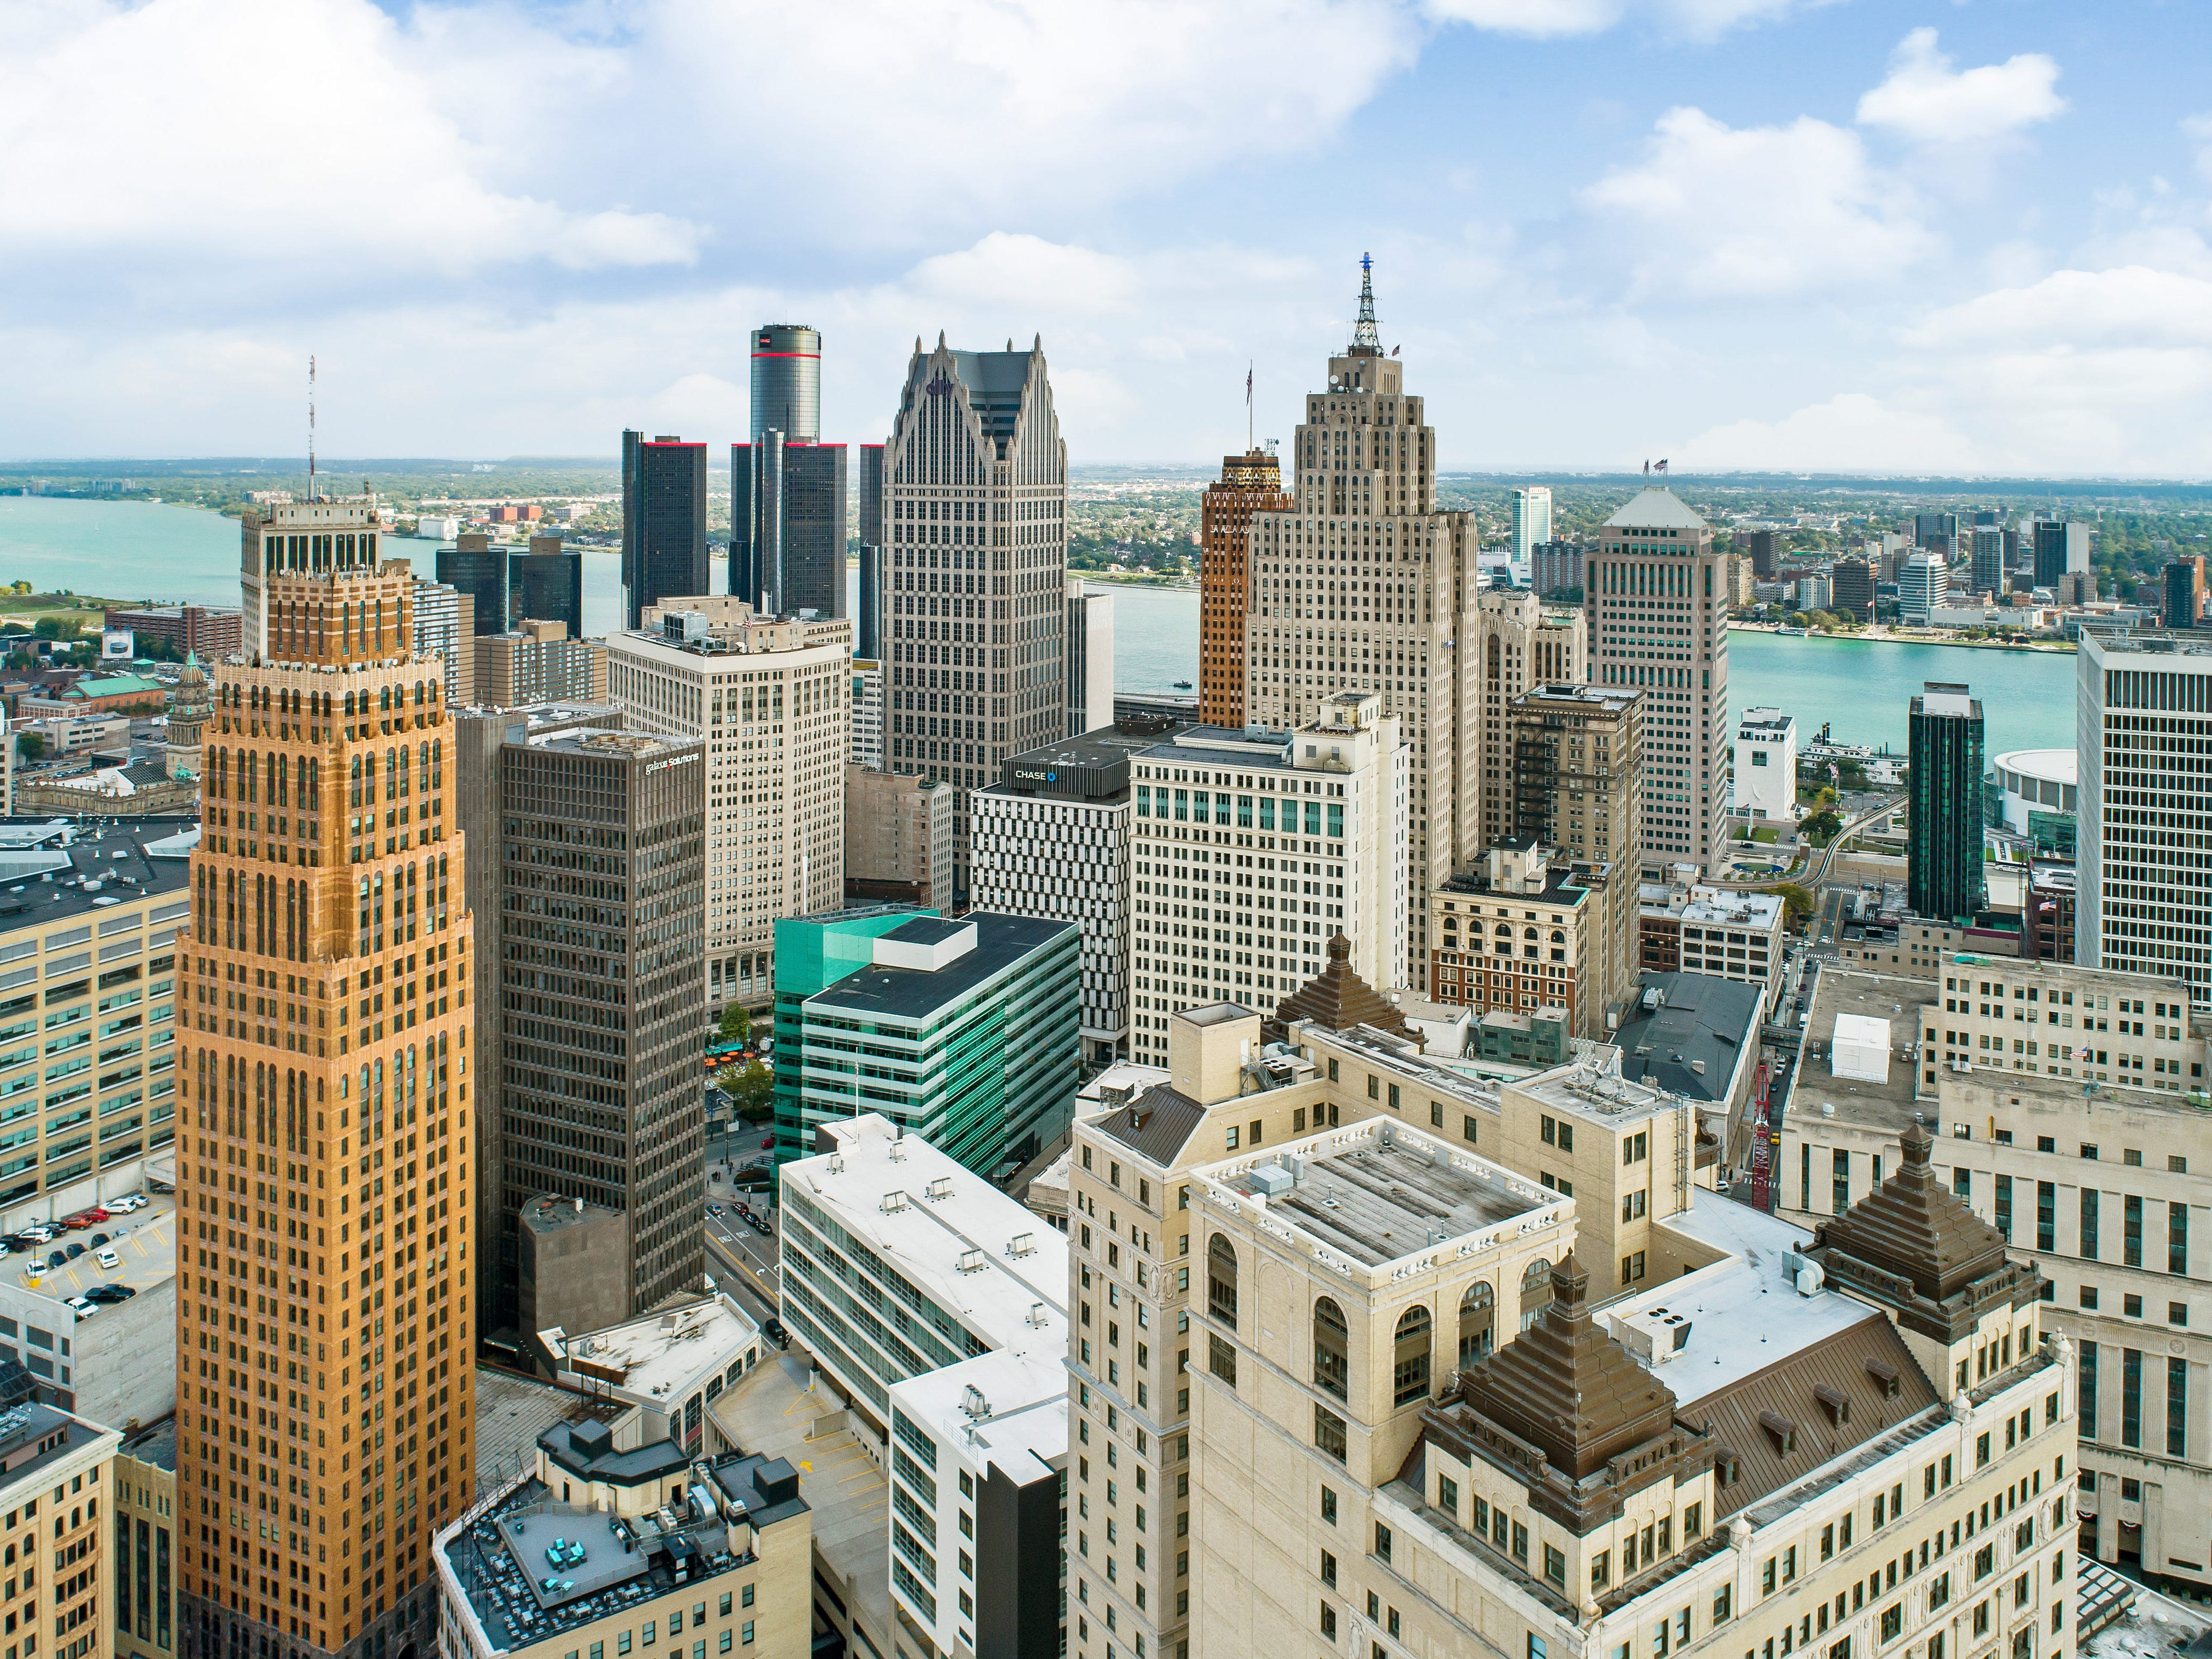 This aerial view shows the three-story penthouse condo at the top of the Westin Book Cadillac hotel building in downtown Detroit.